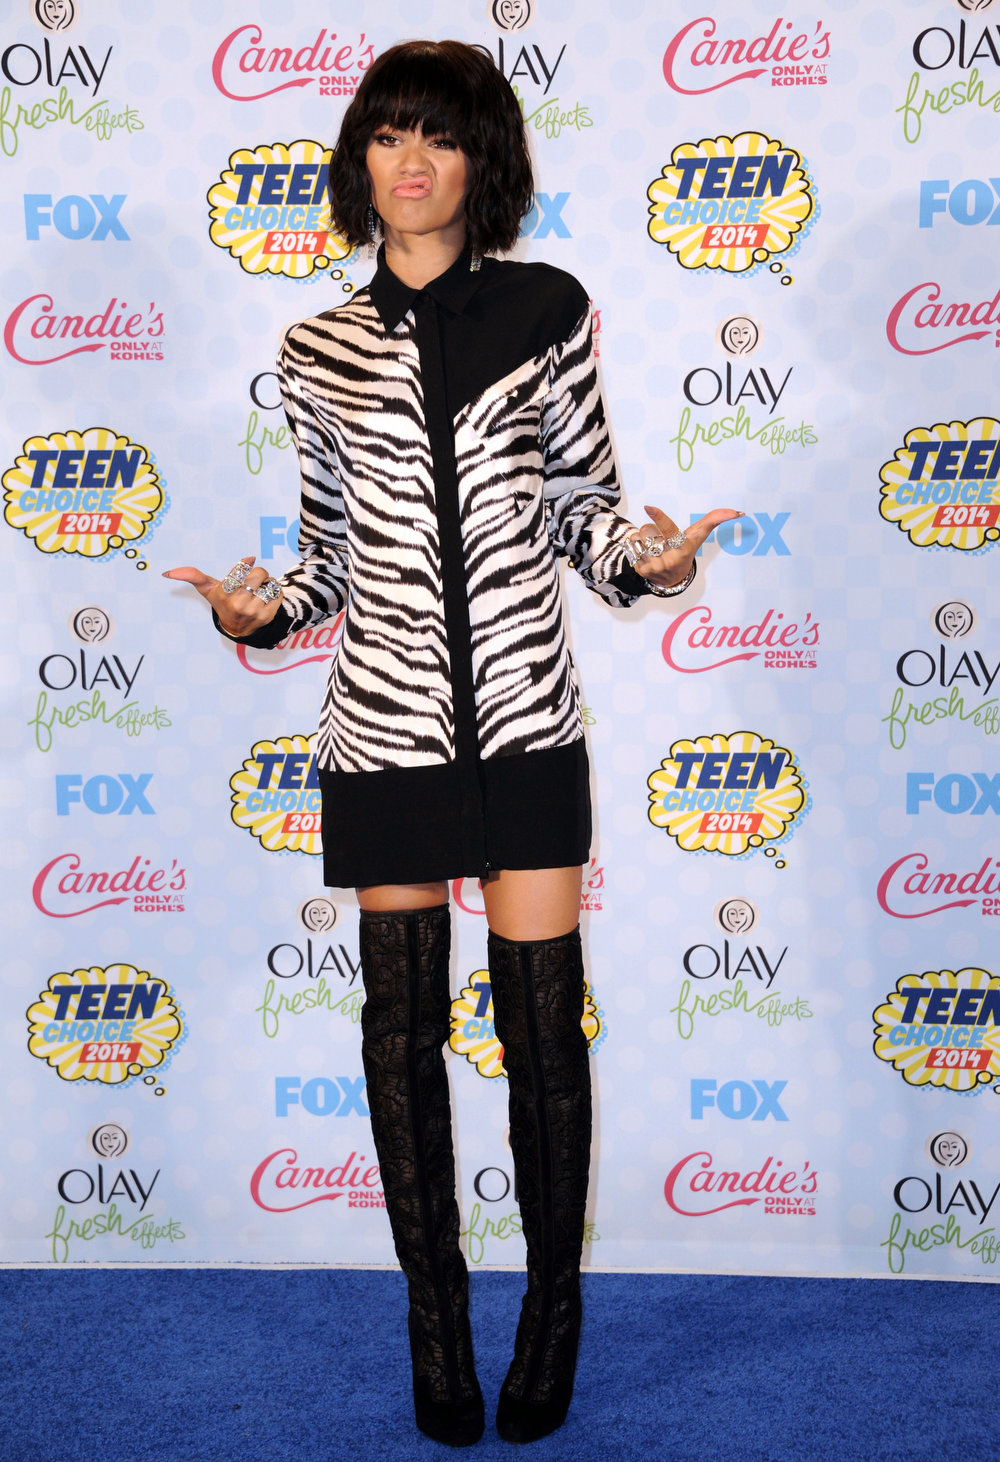 . Zendaya poses in the press room at the Teen Choice Awards at the Shrine Auditorium on Sunday, Aug. 10, 2014, in Los Angeles. (Photo by Richard Shotwell/Invision/AP)